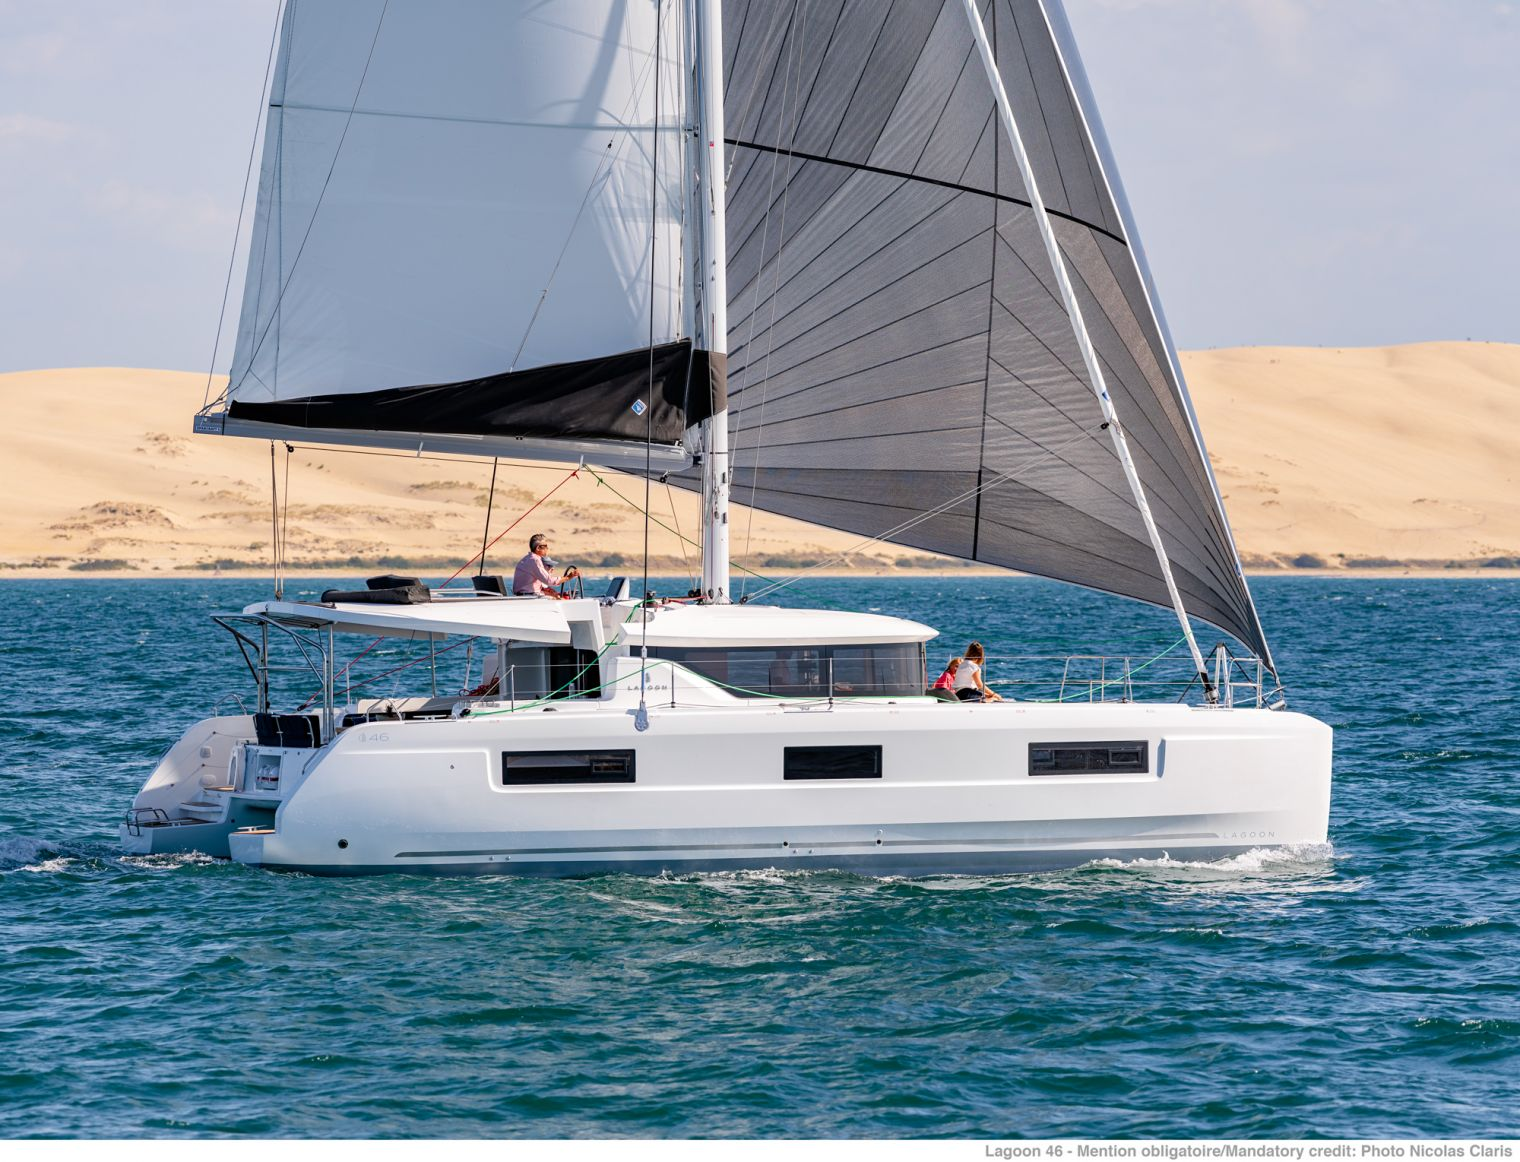 Lagoon at the Multihull Boat Show 2019